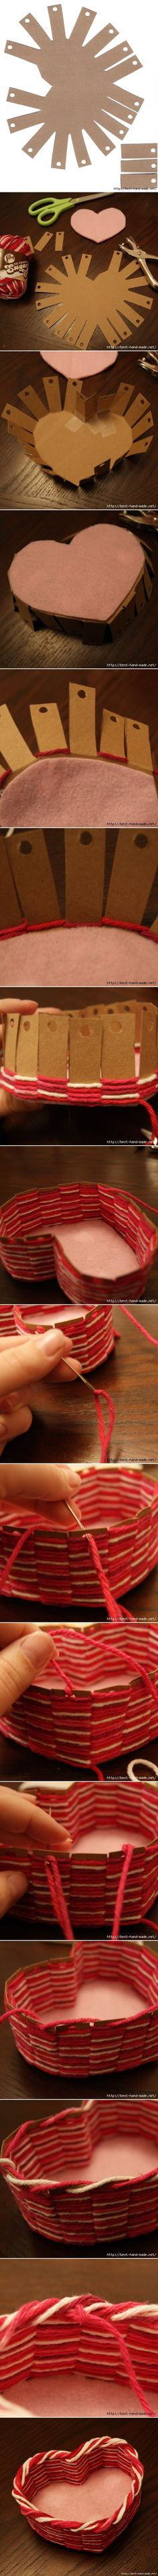 Yarn heart basket tutorial